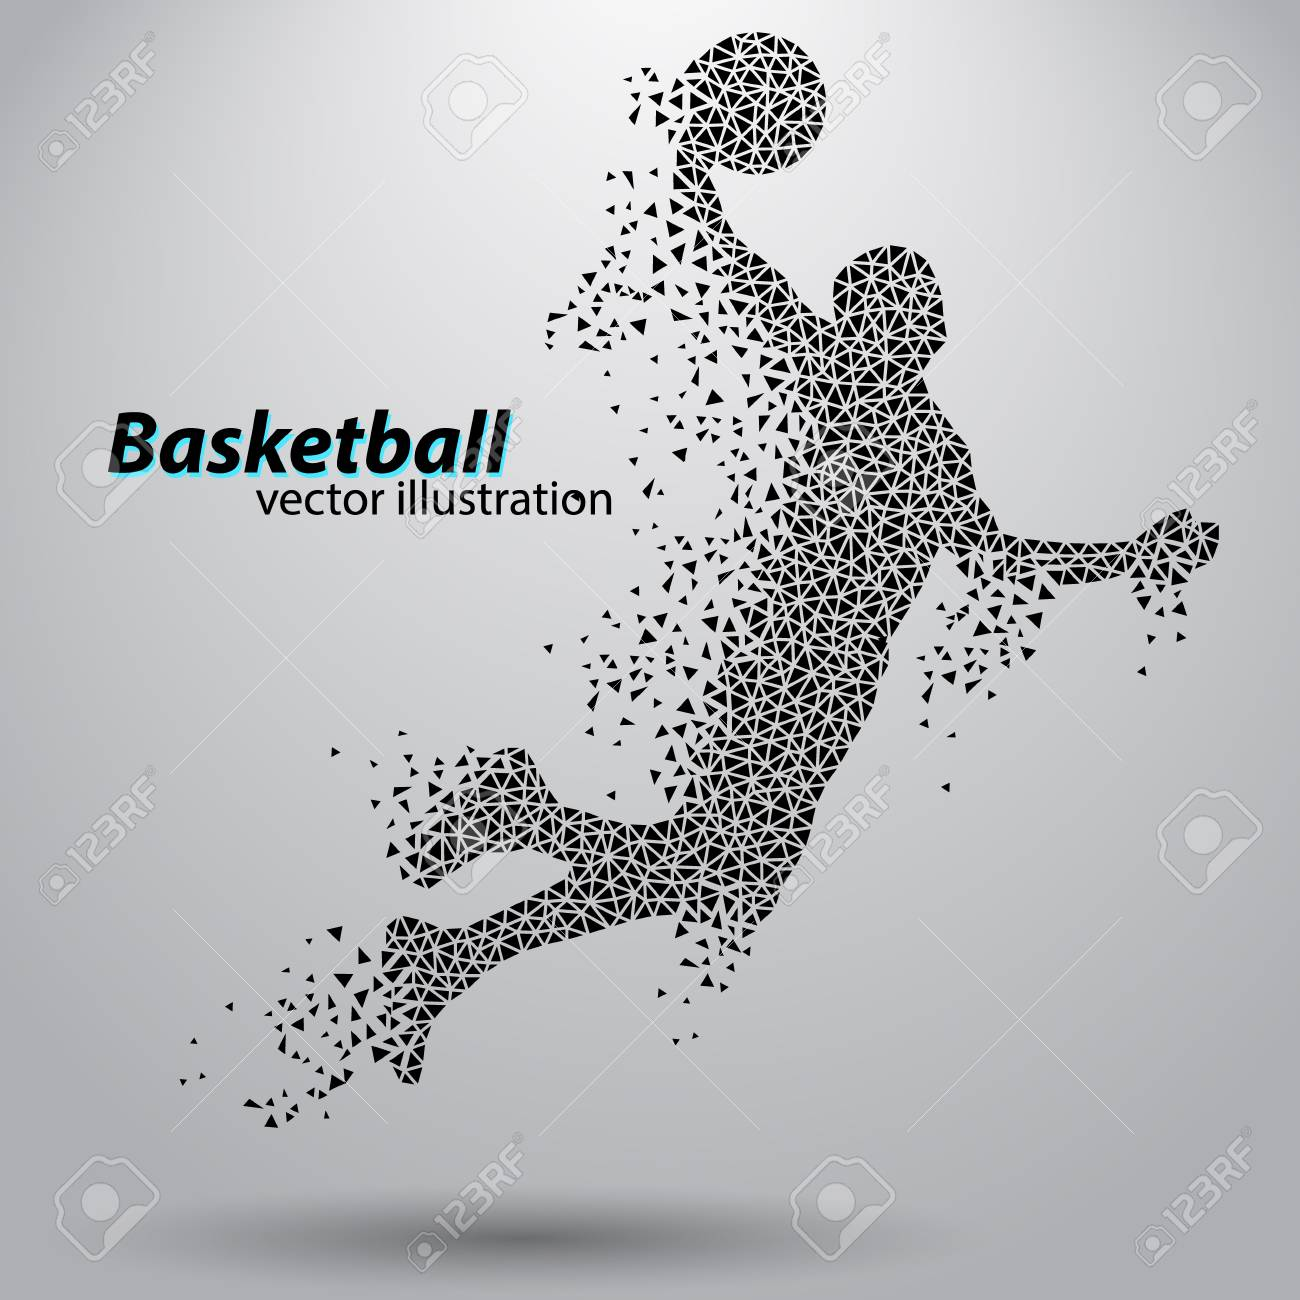 Basketball player of the triangles. Background and text on a separate layer, color can be changed in one click - 67497391